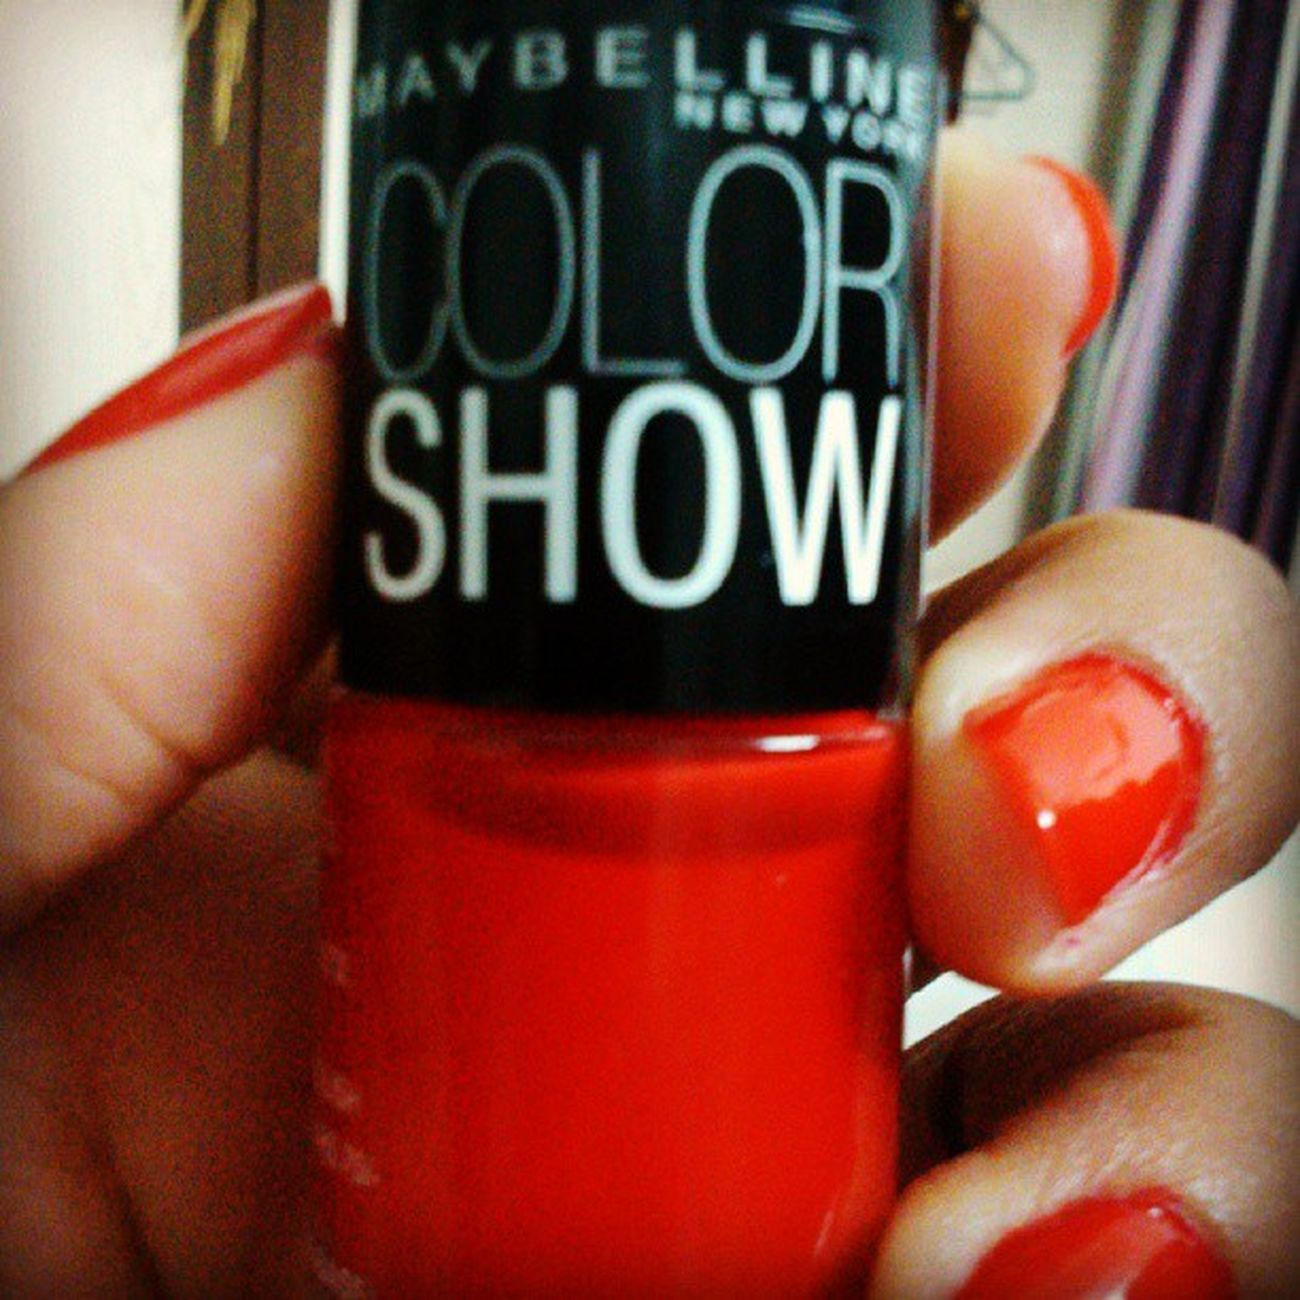 Maybelline Newyork Colourshow New fun painting nails :-P